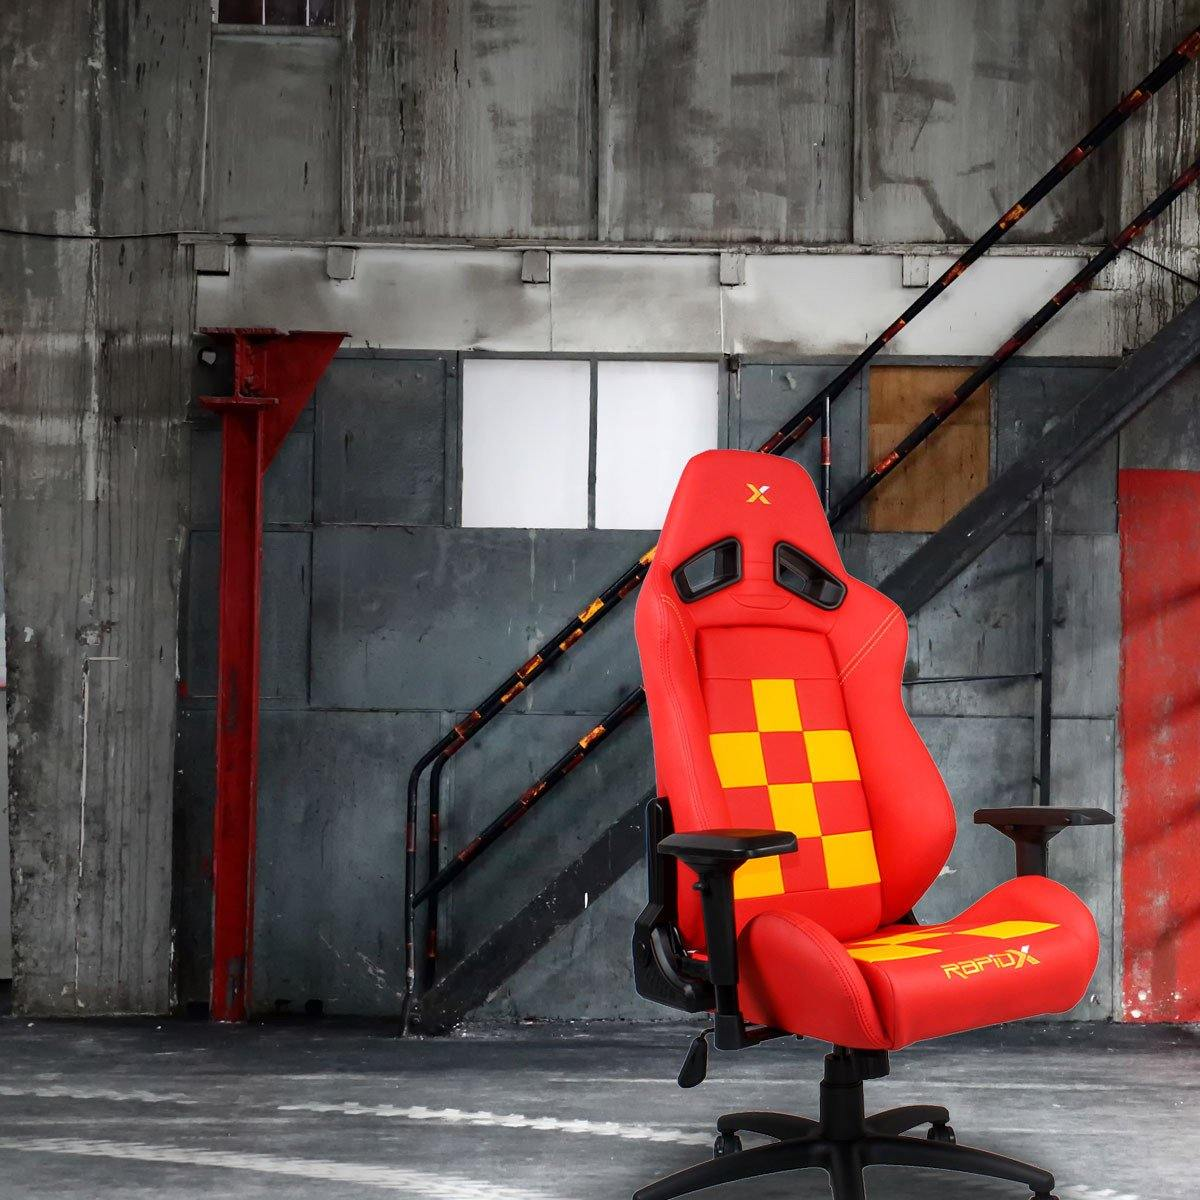 Finish Line Chair - Yellow on Red